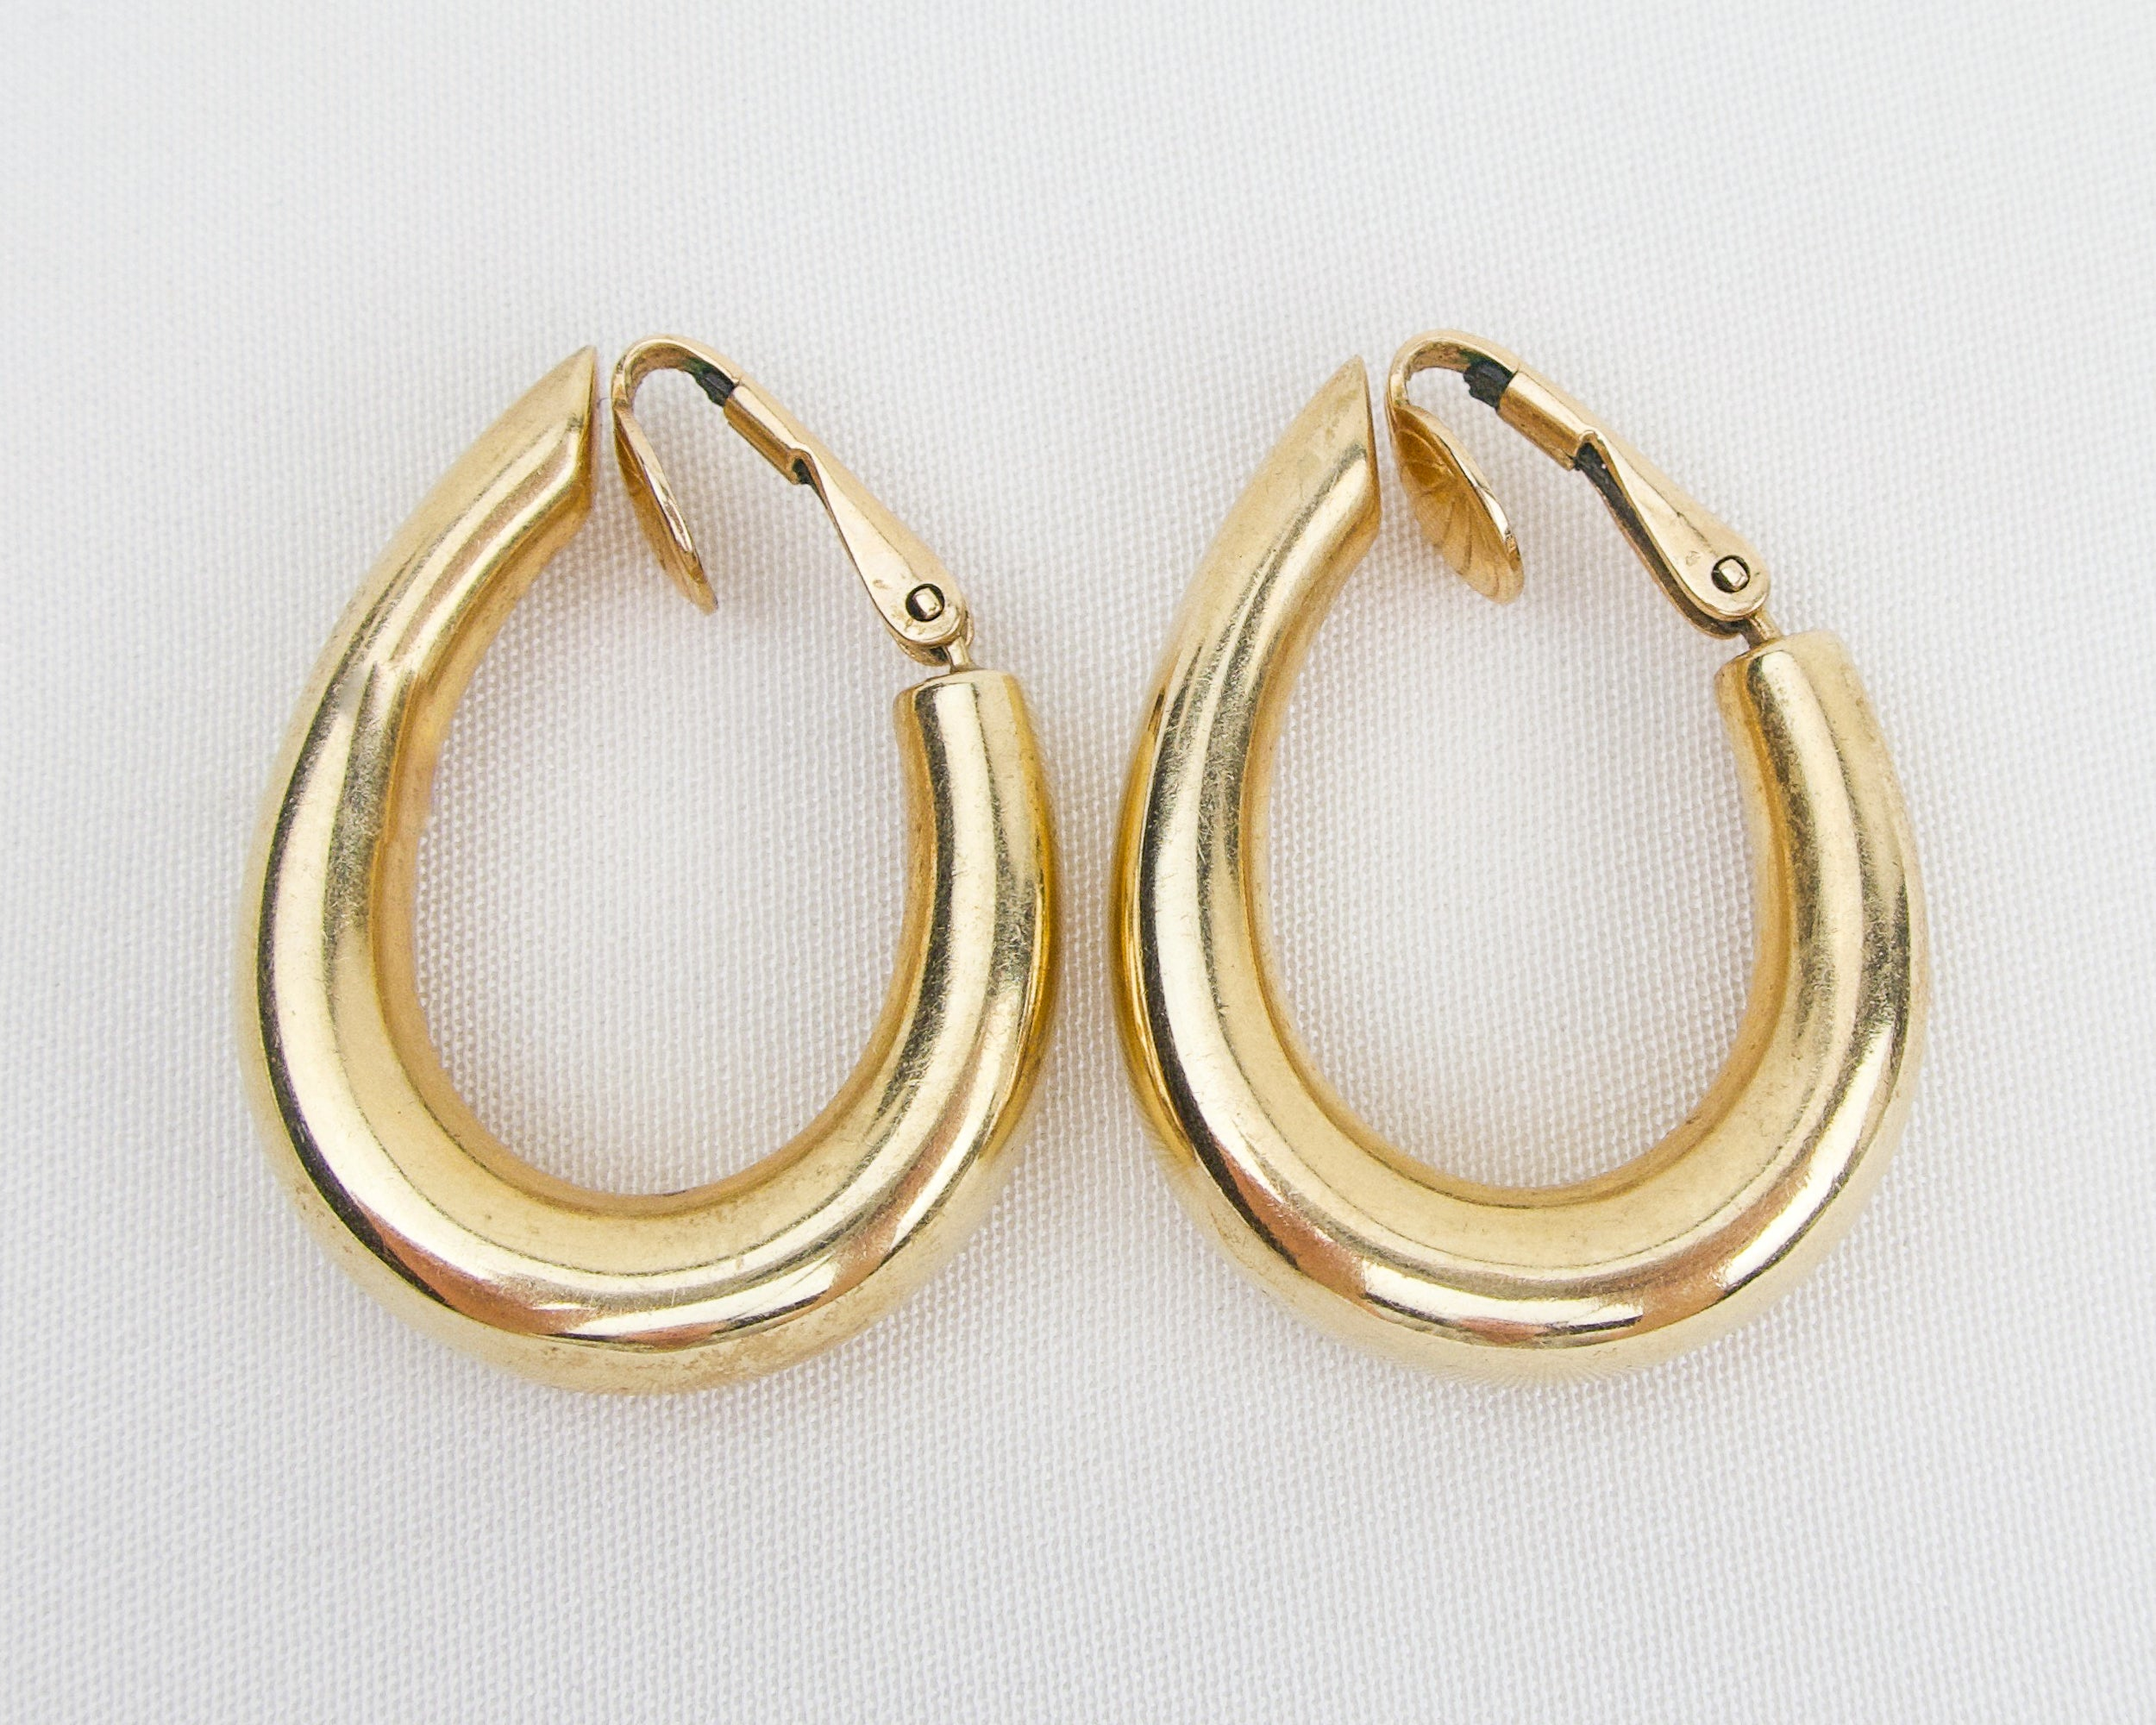 Midcentury Hollow Hoop Earrings